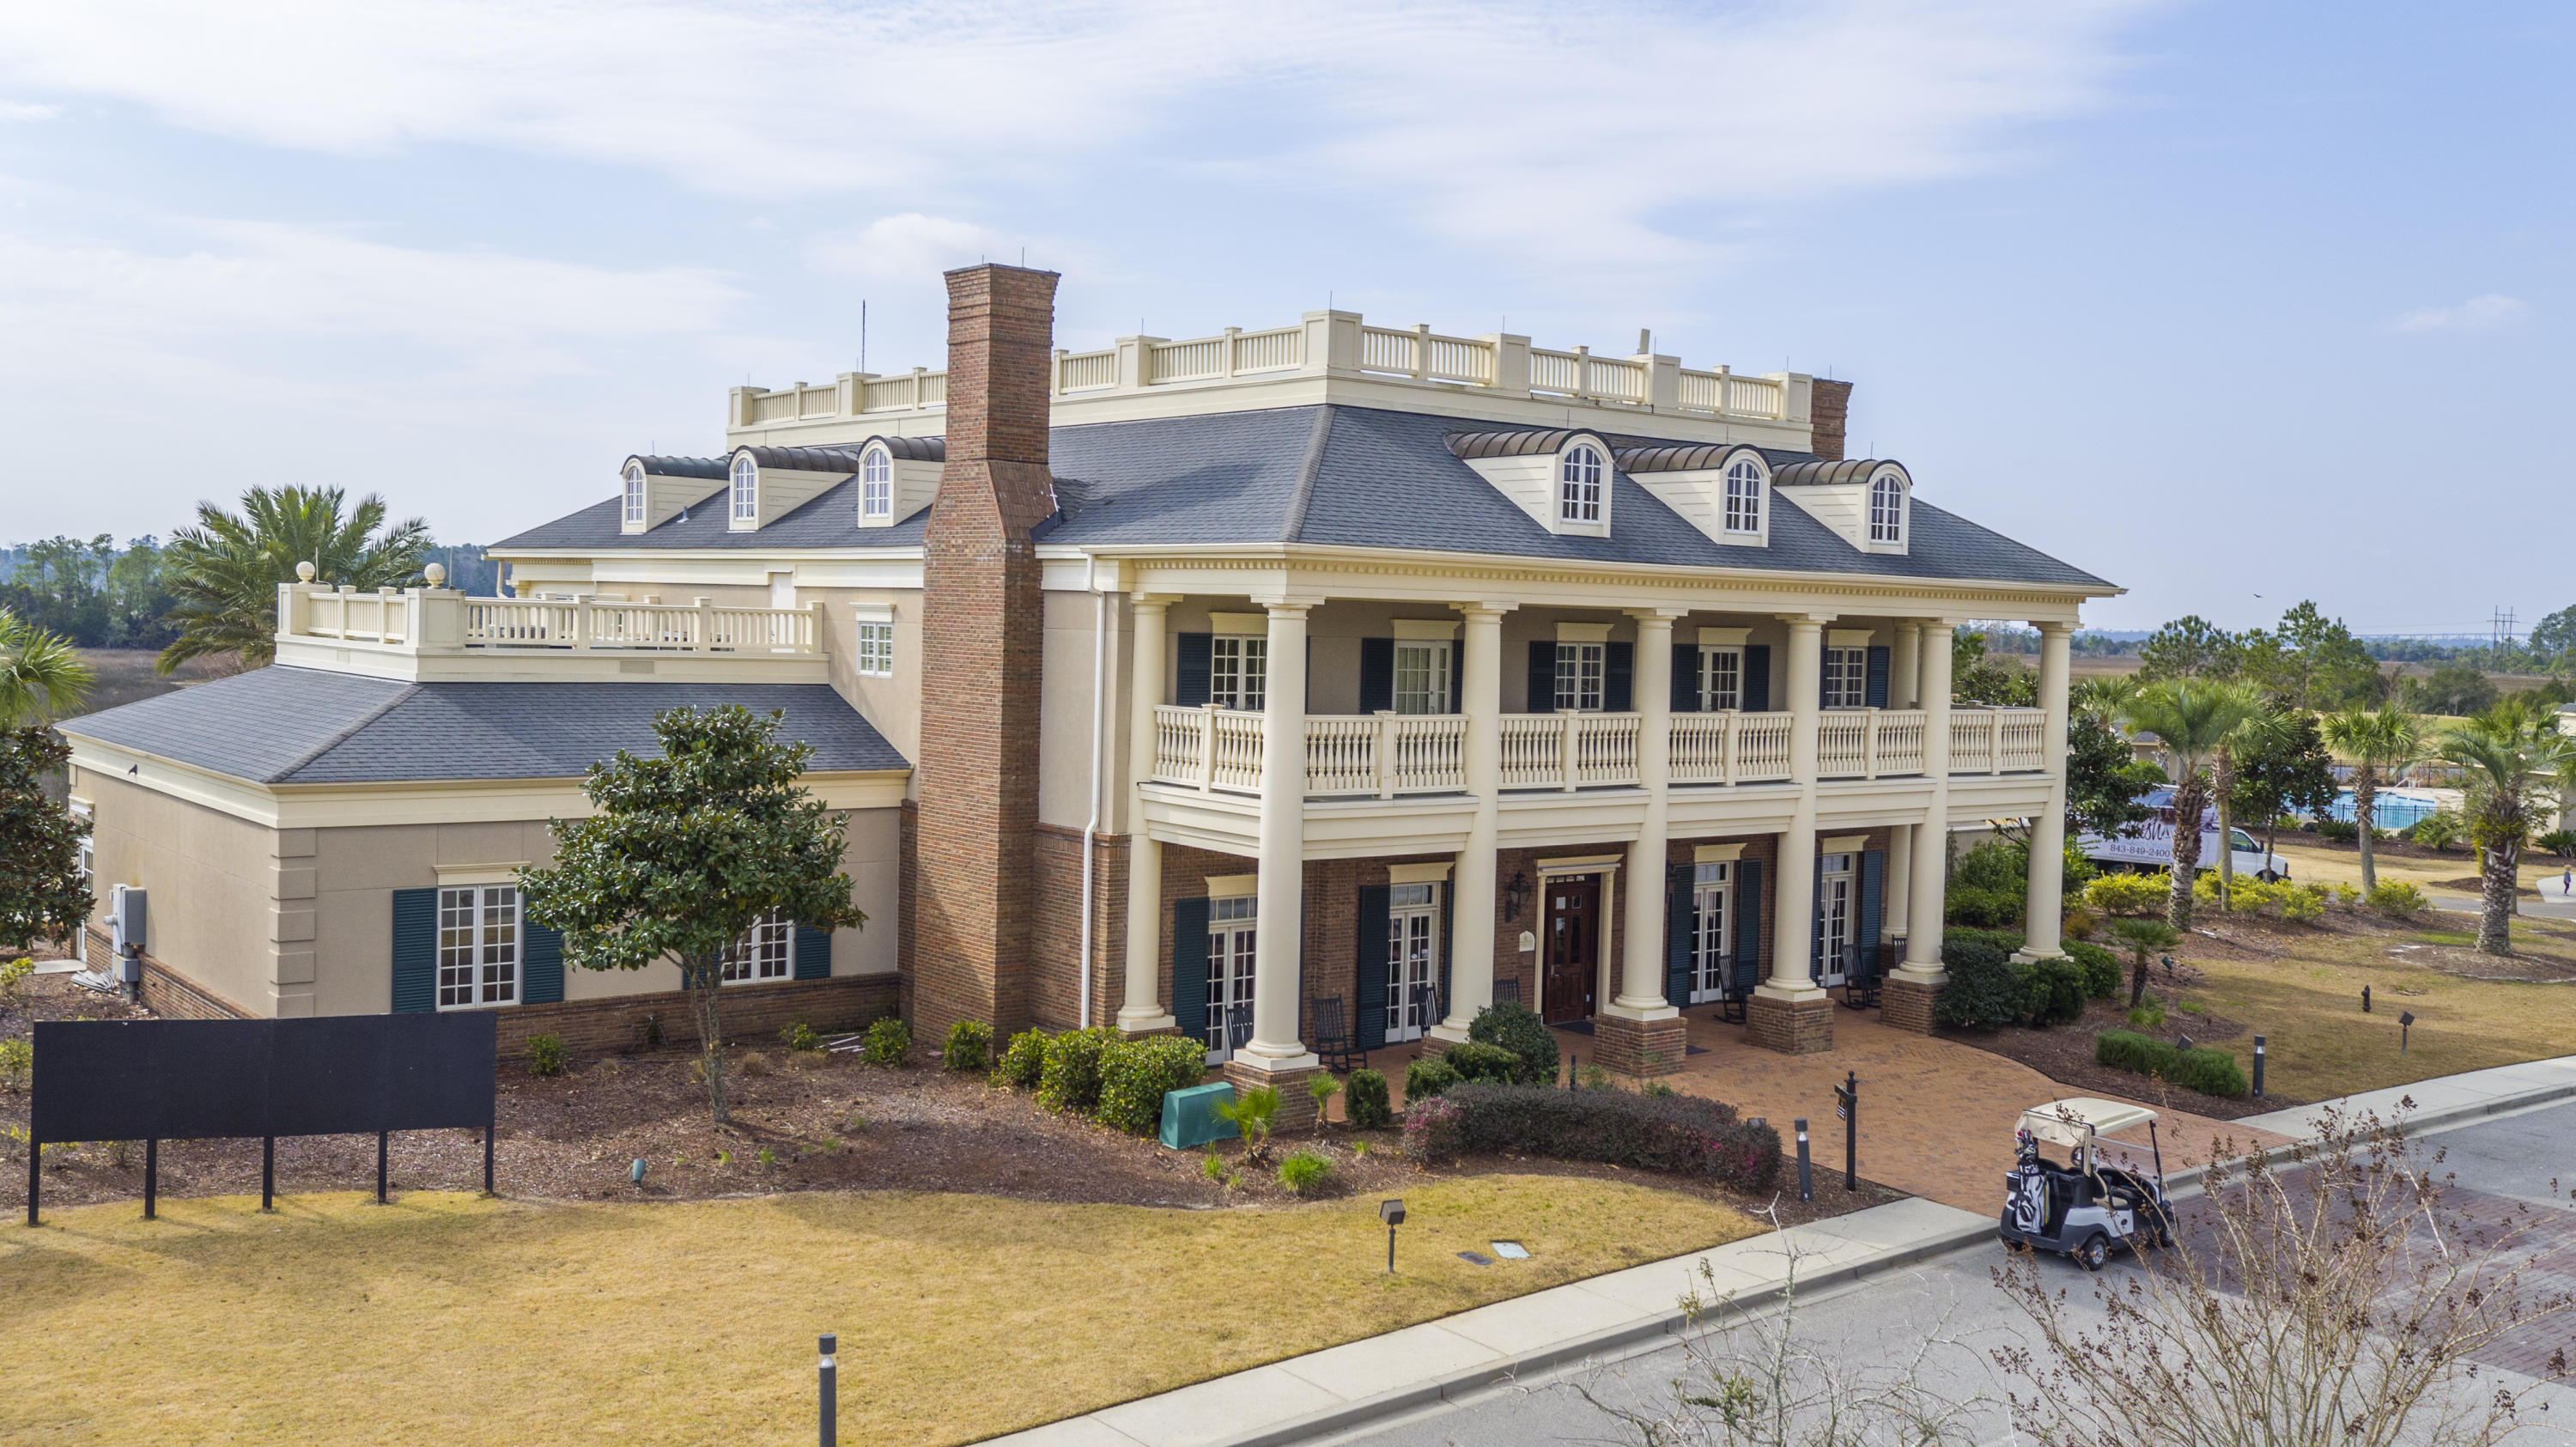 Rivertowne Country Club Homes For Sale - 1721 Rivertowne Country Club, Mount Pleasant, SC - 37